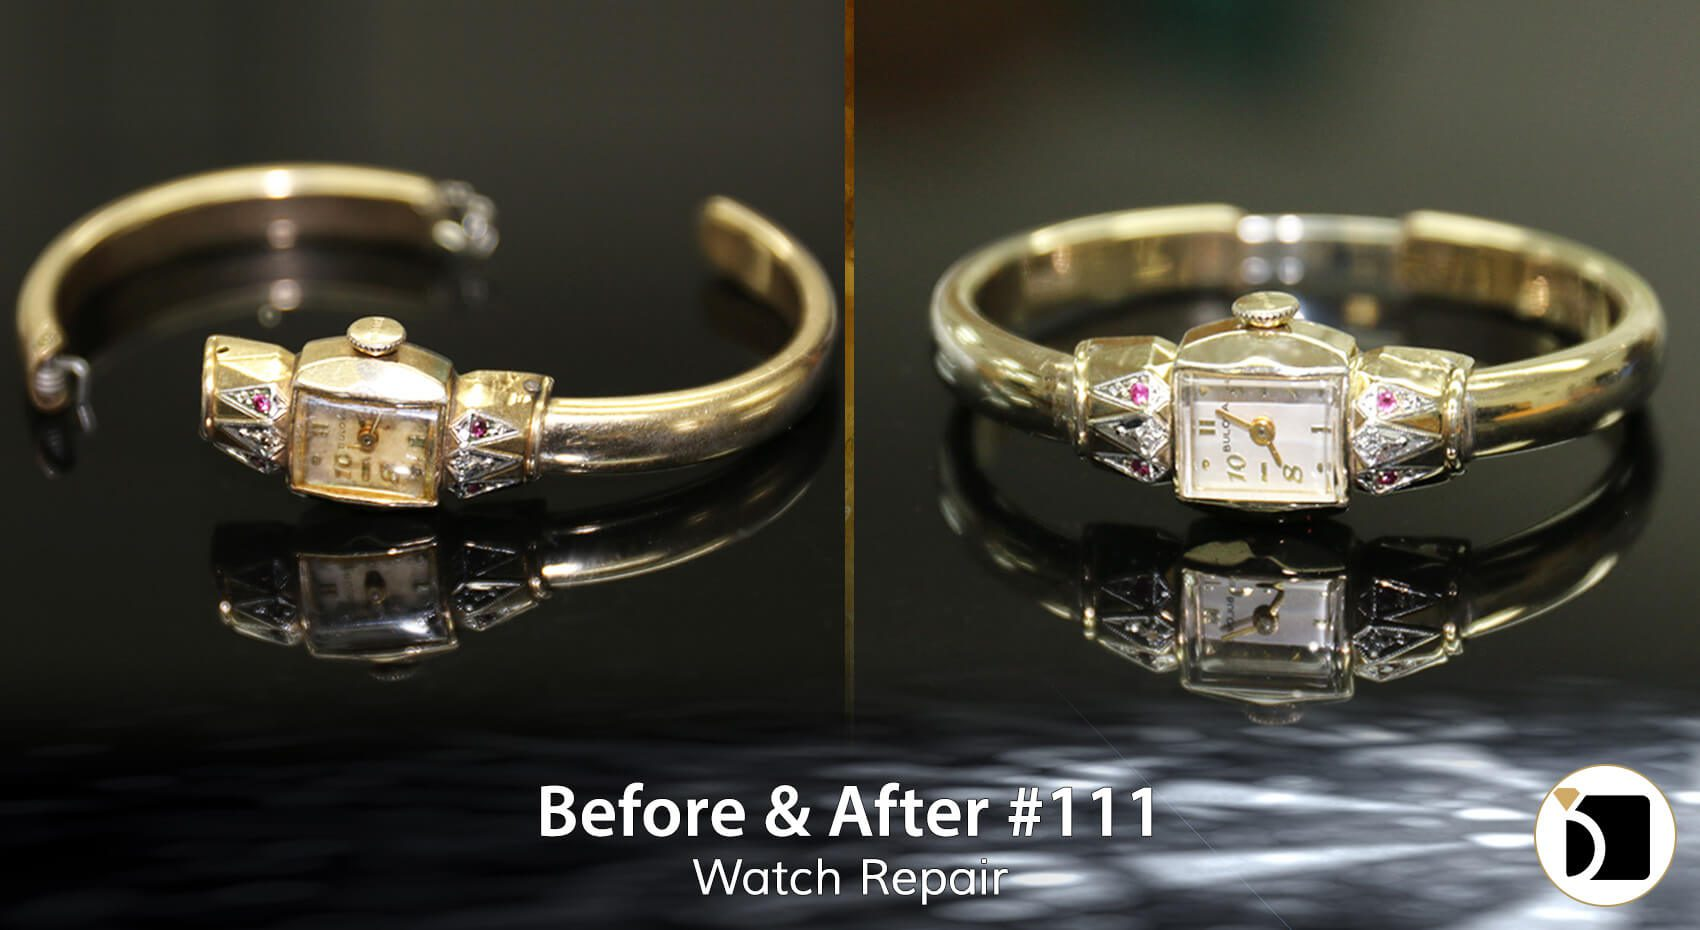 Before & After #111